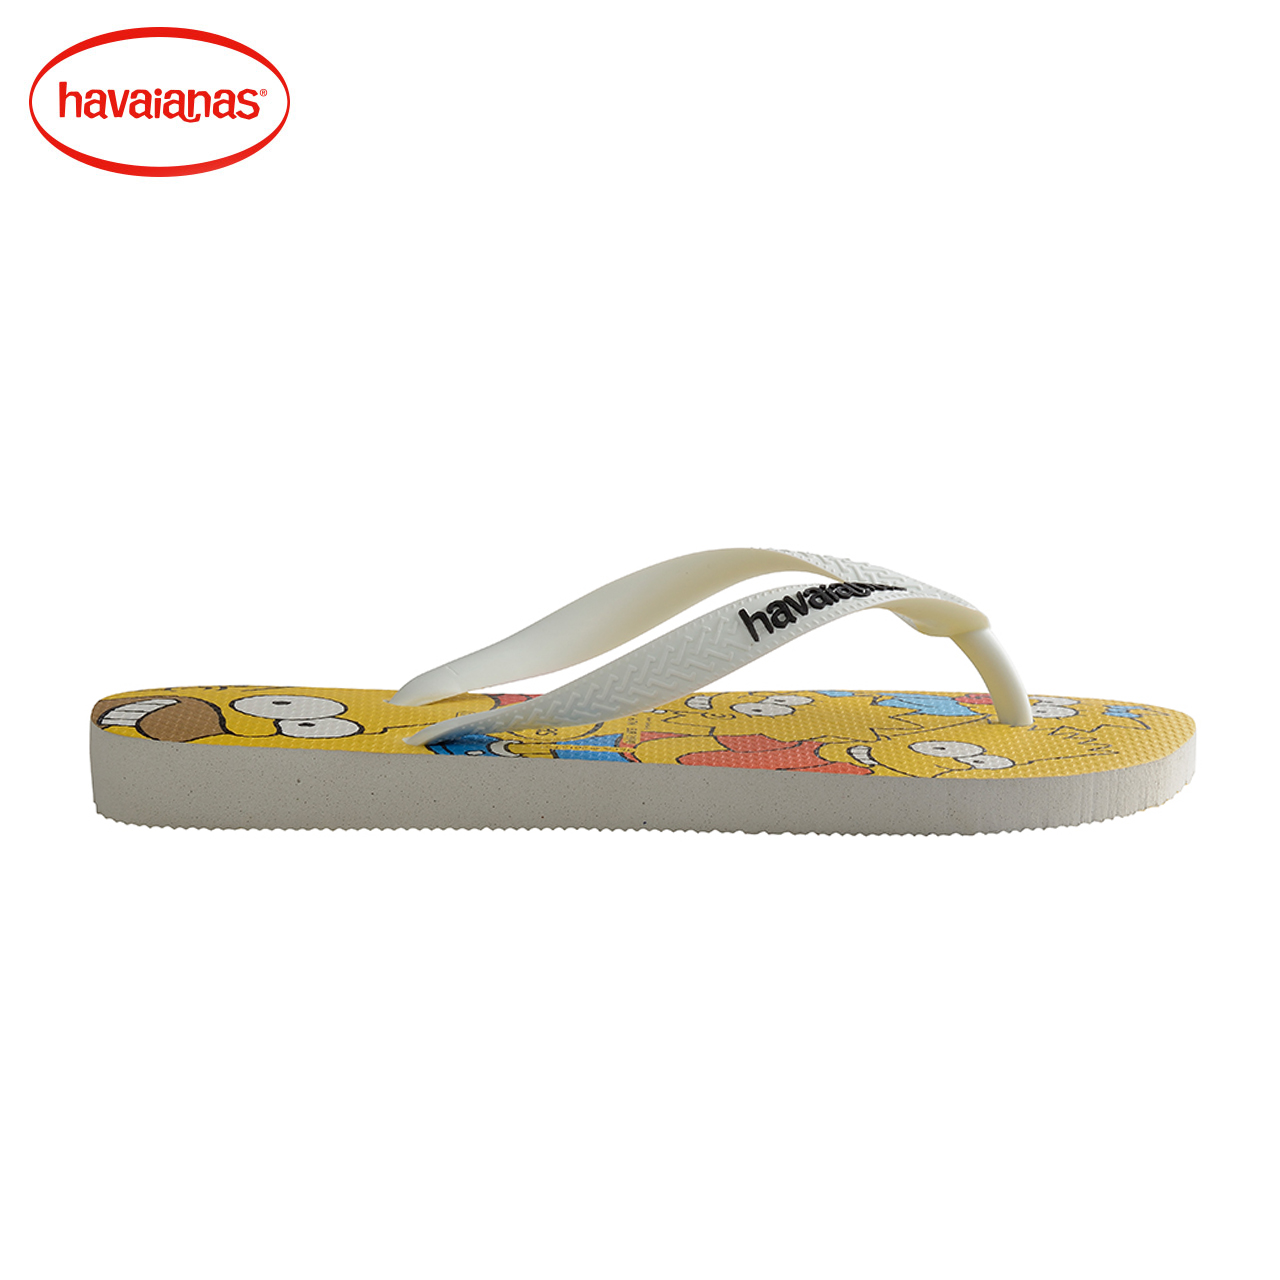 6e11a501ee74c ... flip flops Simpson series unisex yellow blue slippers Havana · Zoom · lightbox  moreview · lightbox moreview · lightbox moreview ...